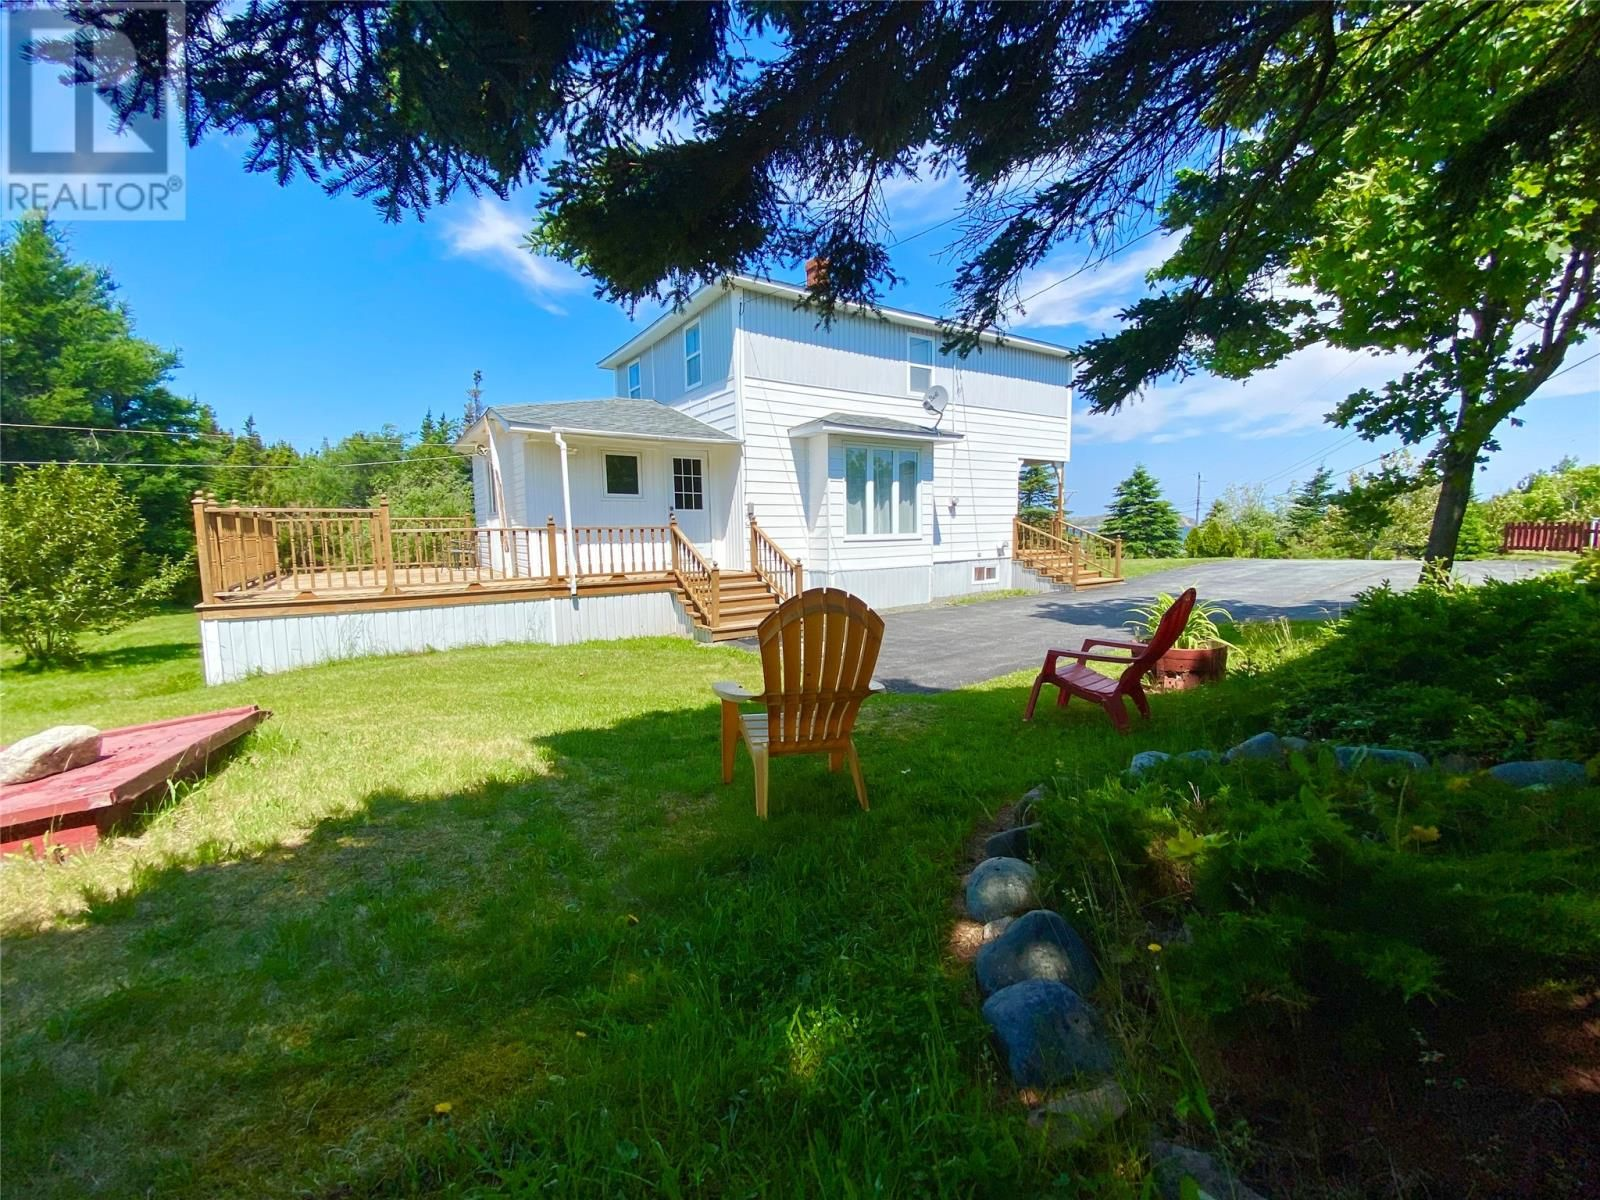 Main Photo: 5 Little Harbour Road in Twillingate: House for sale : MLS®# 1233301